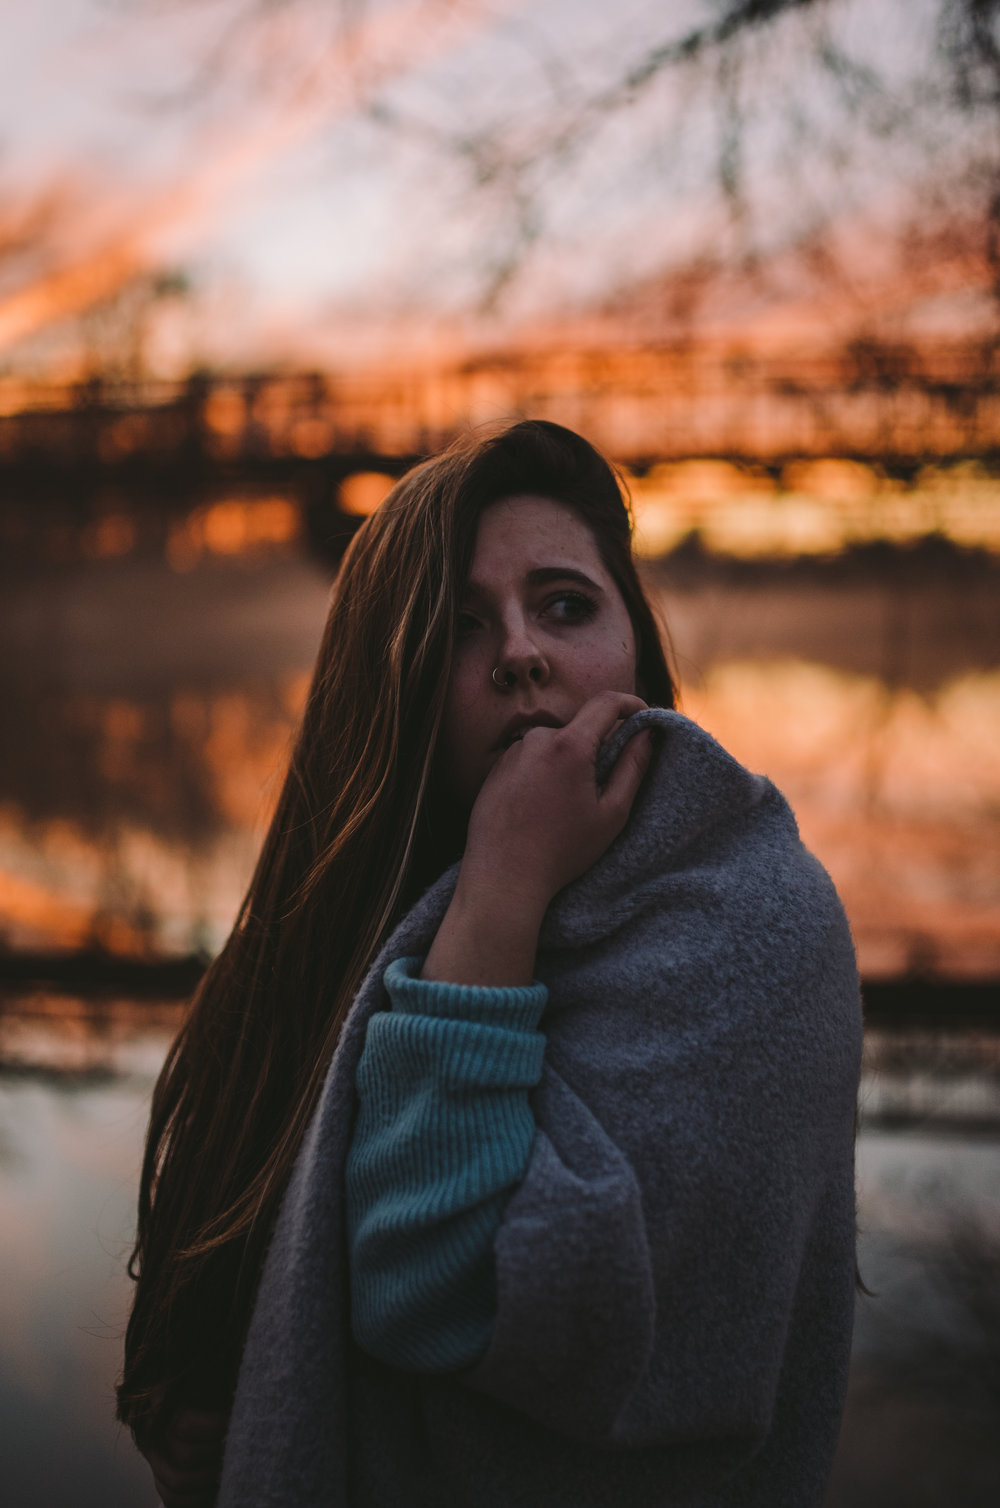 Sunset_IndianapolisIndiana_January2018_Senior Photography In Tempe_ArizonaSeniorPhotographer_SamanthaRosePhotography_final_-5.jpg